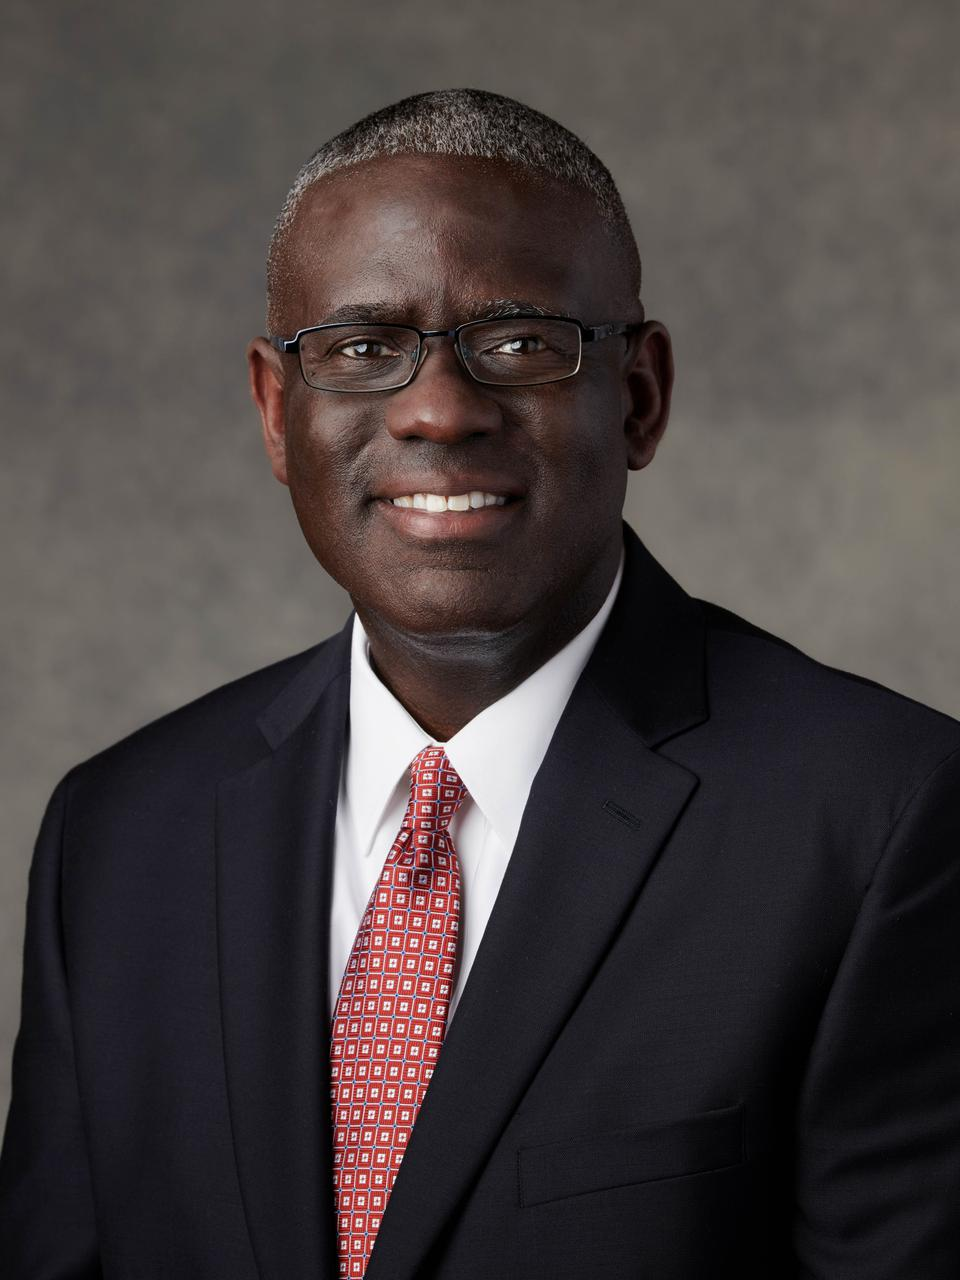 Elder Peter M. Johnson became the first African-American General Authority in The Church of Jesus Christ of Latter-day Saints' 189-year history on Saturday.